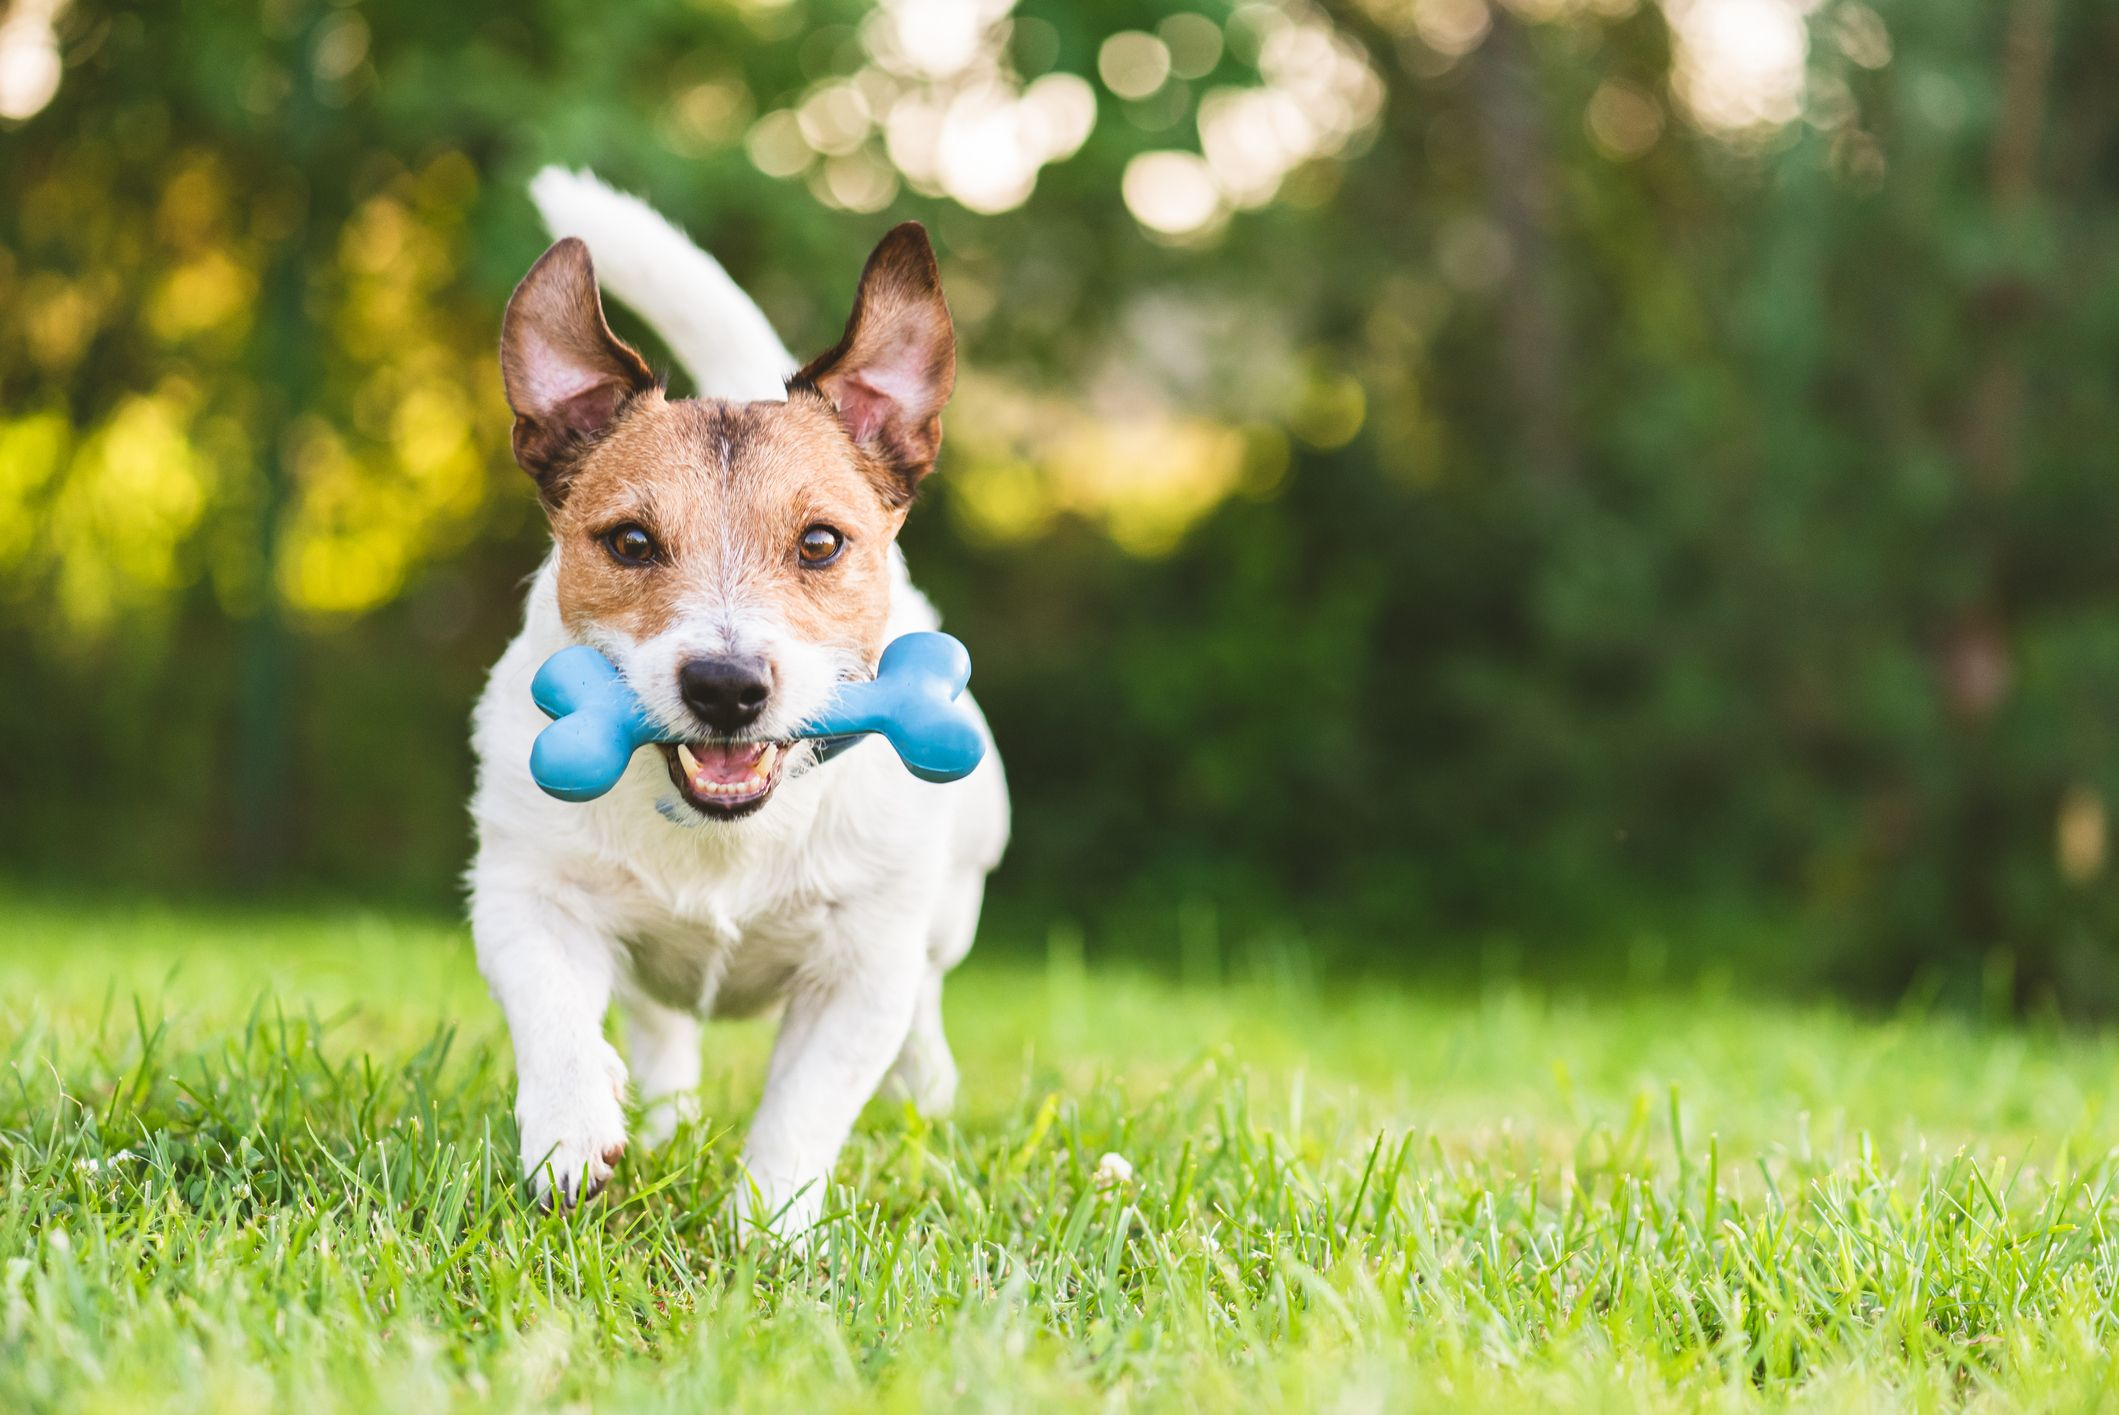 C:\Users\PC\Downloads\happy-and-cheerful-dog-playing-fetch-with-toy-bone-royalty-free-image-1590068781.jpg